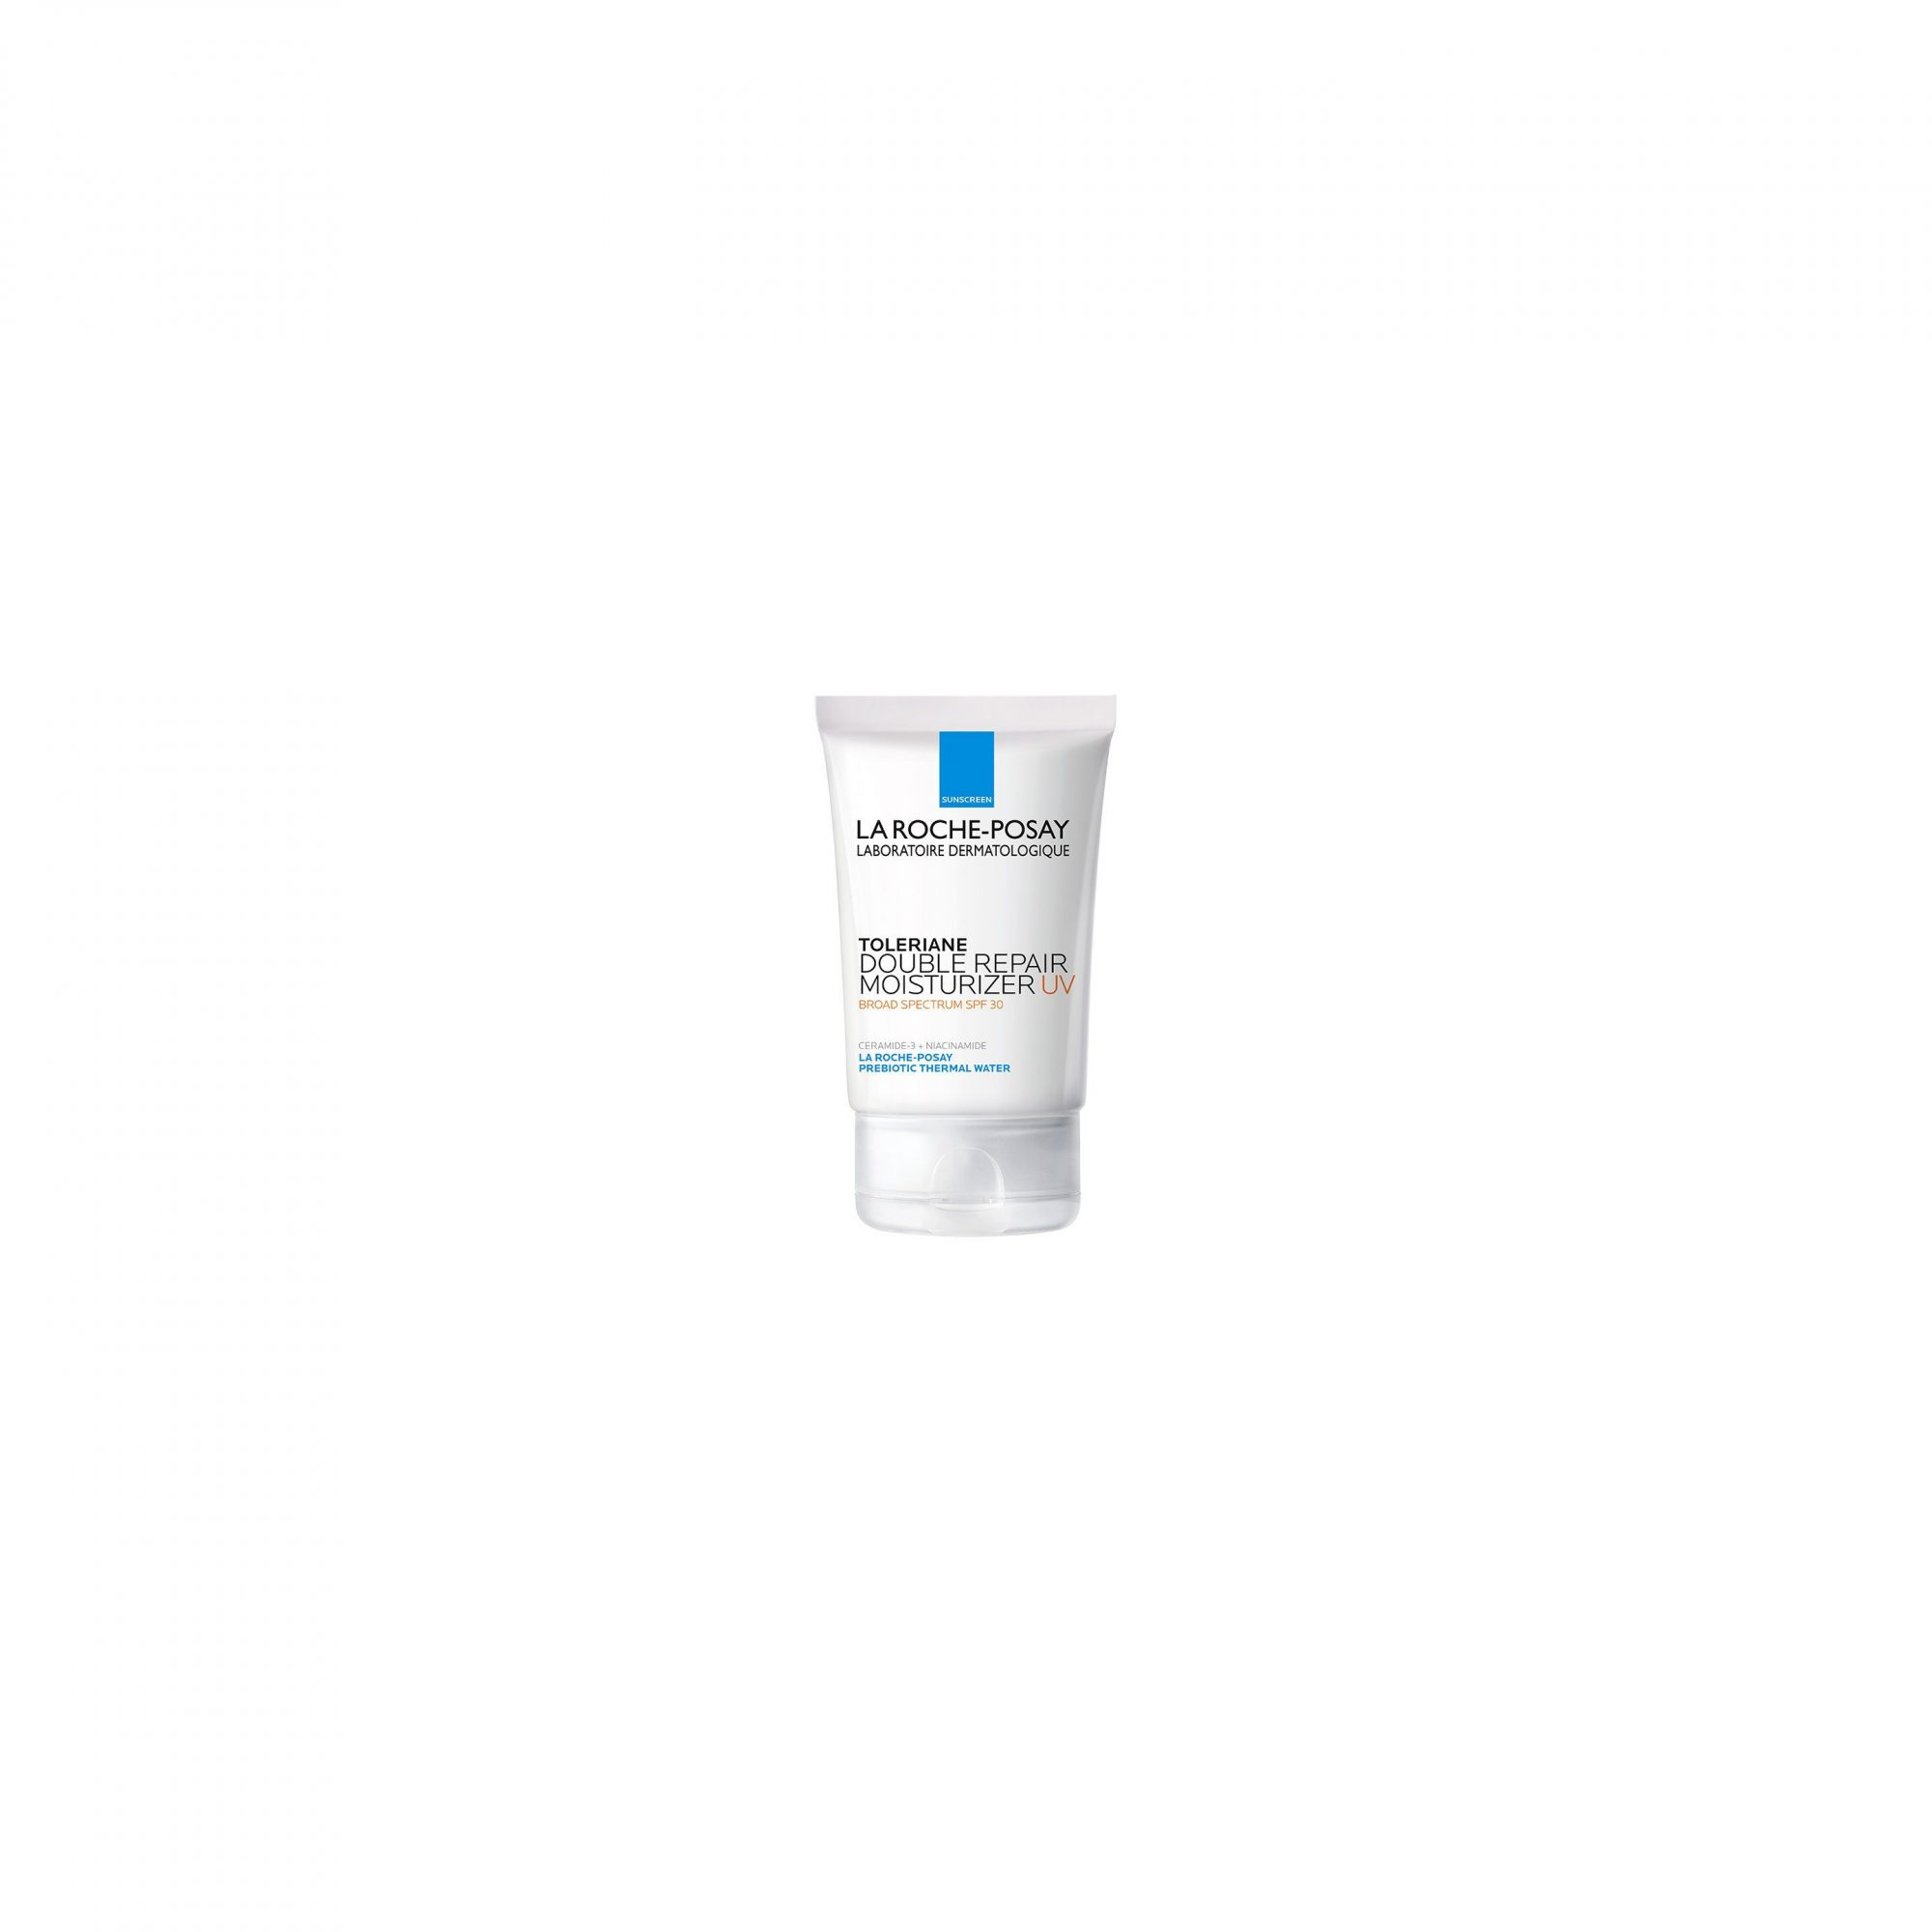 These Are The Best Moisturizers For Combination Skin Health Hydrating Moisturizer Cream La Roche Posay Toleriane Double Repair Uv